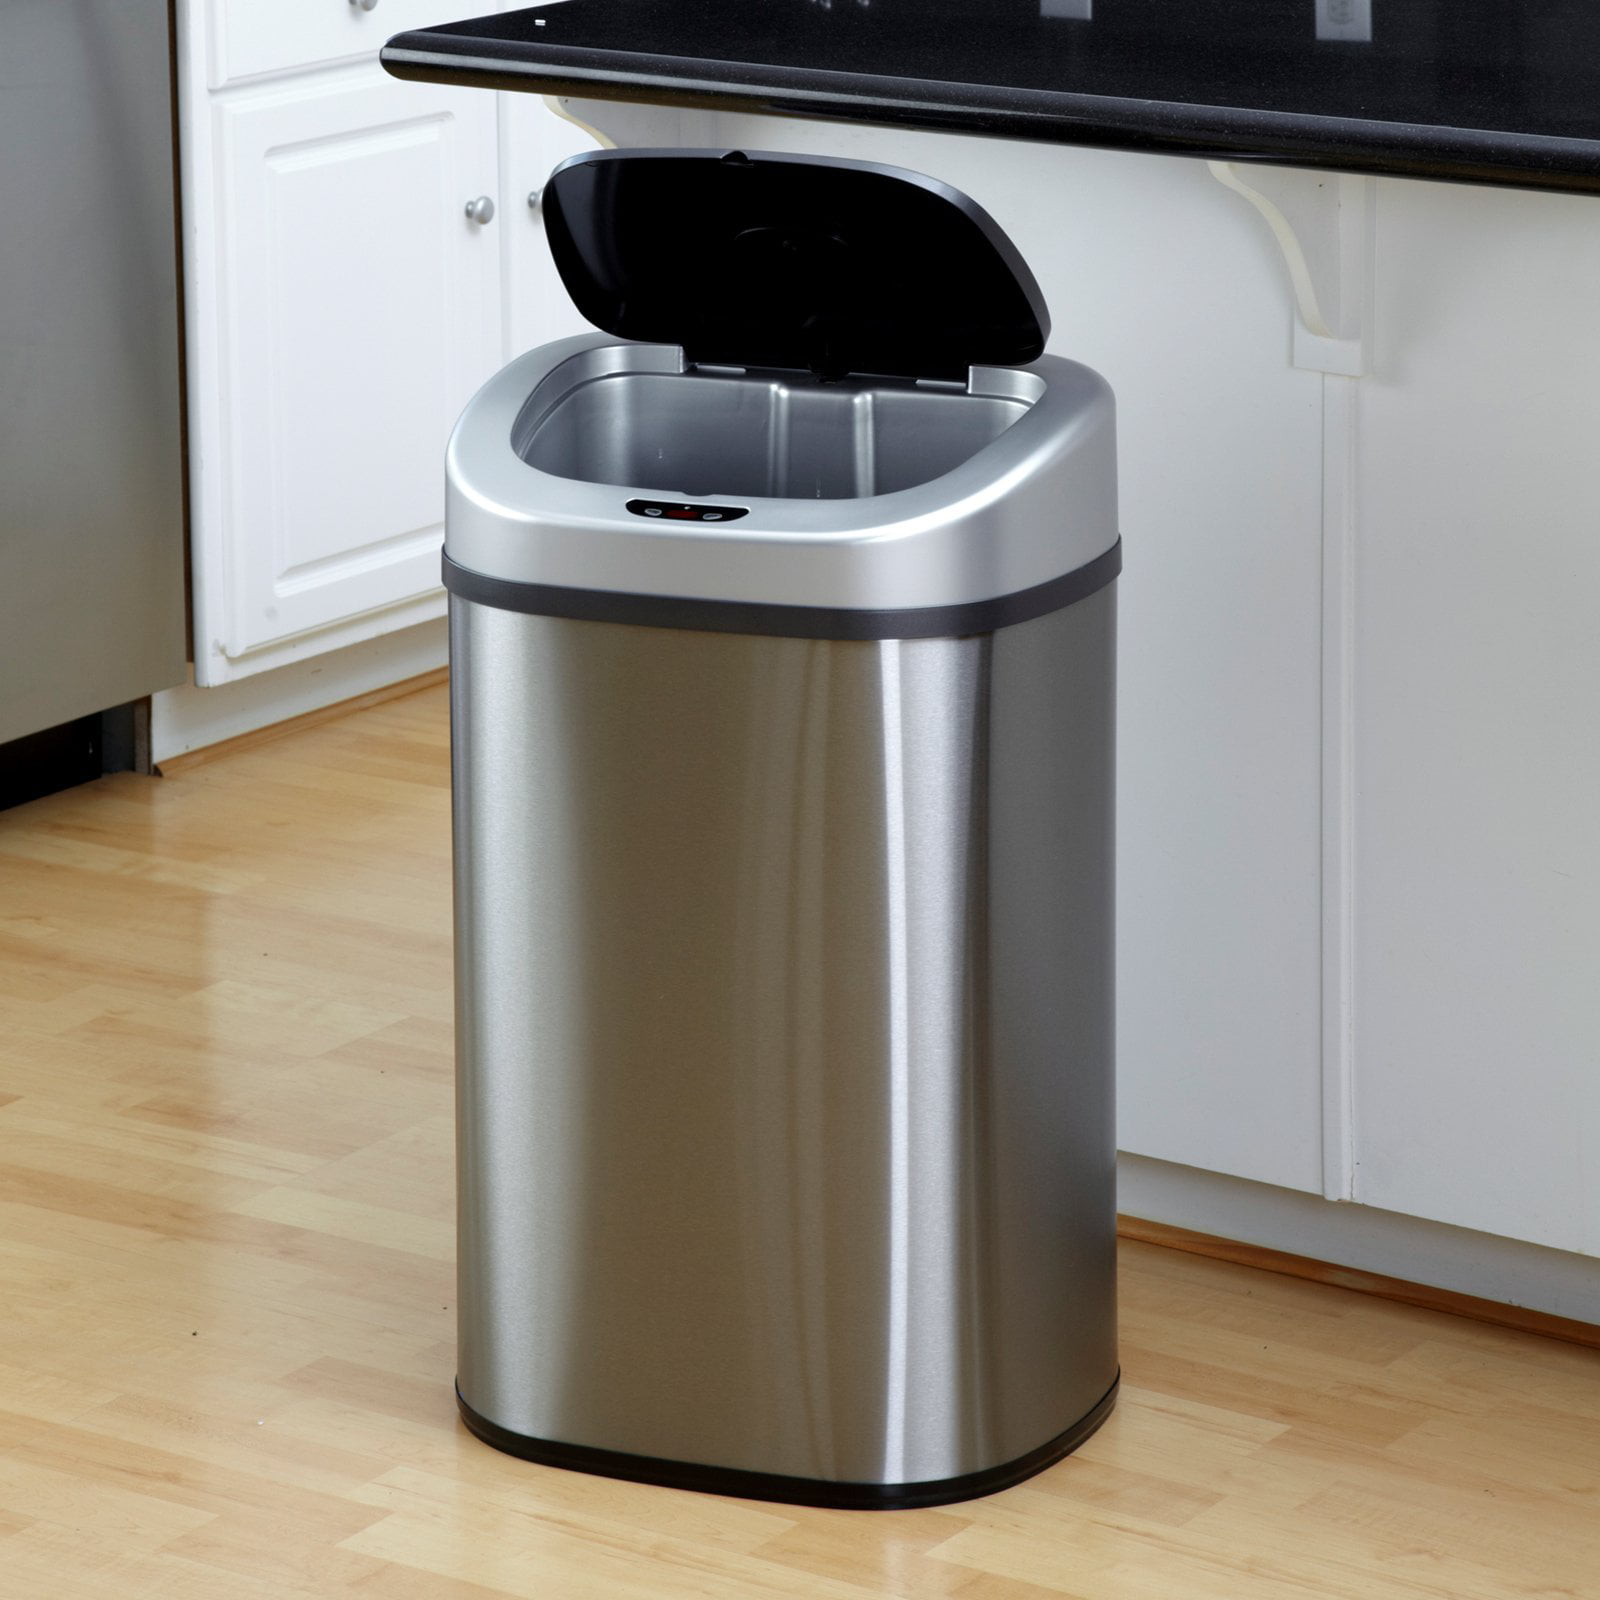 Automatic Touchless Trash Can   Walmart.com